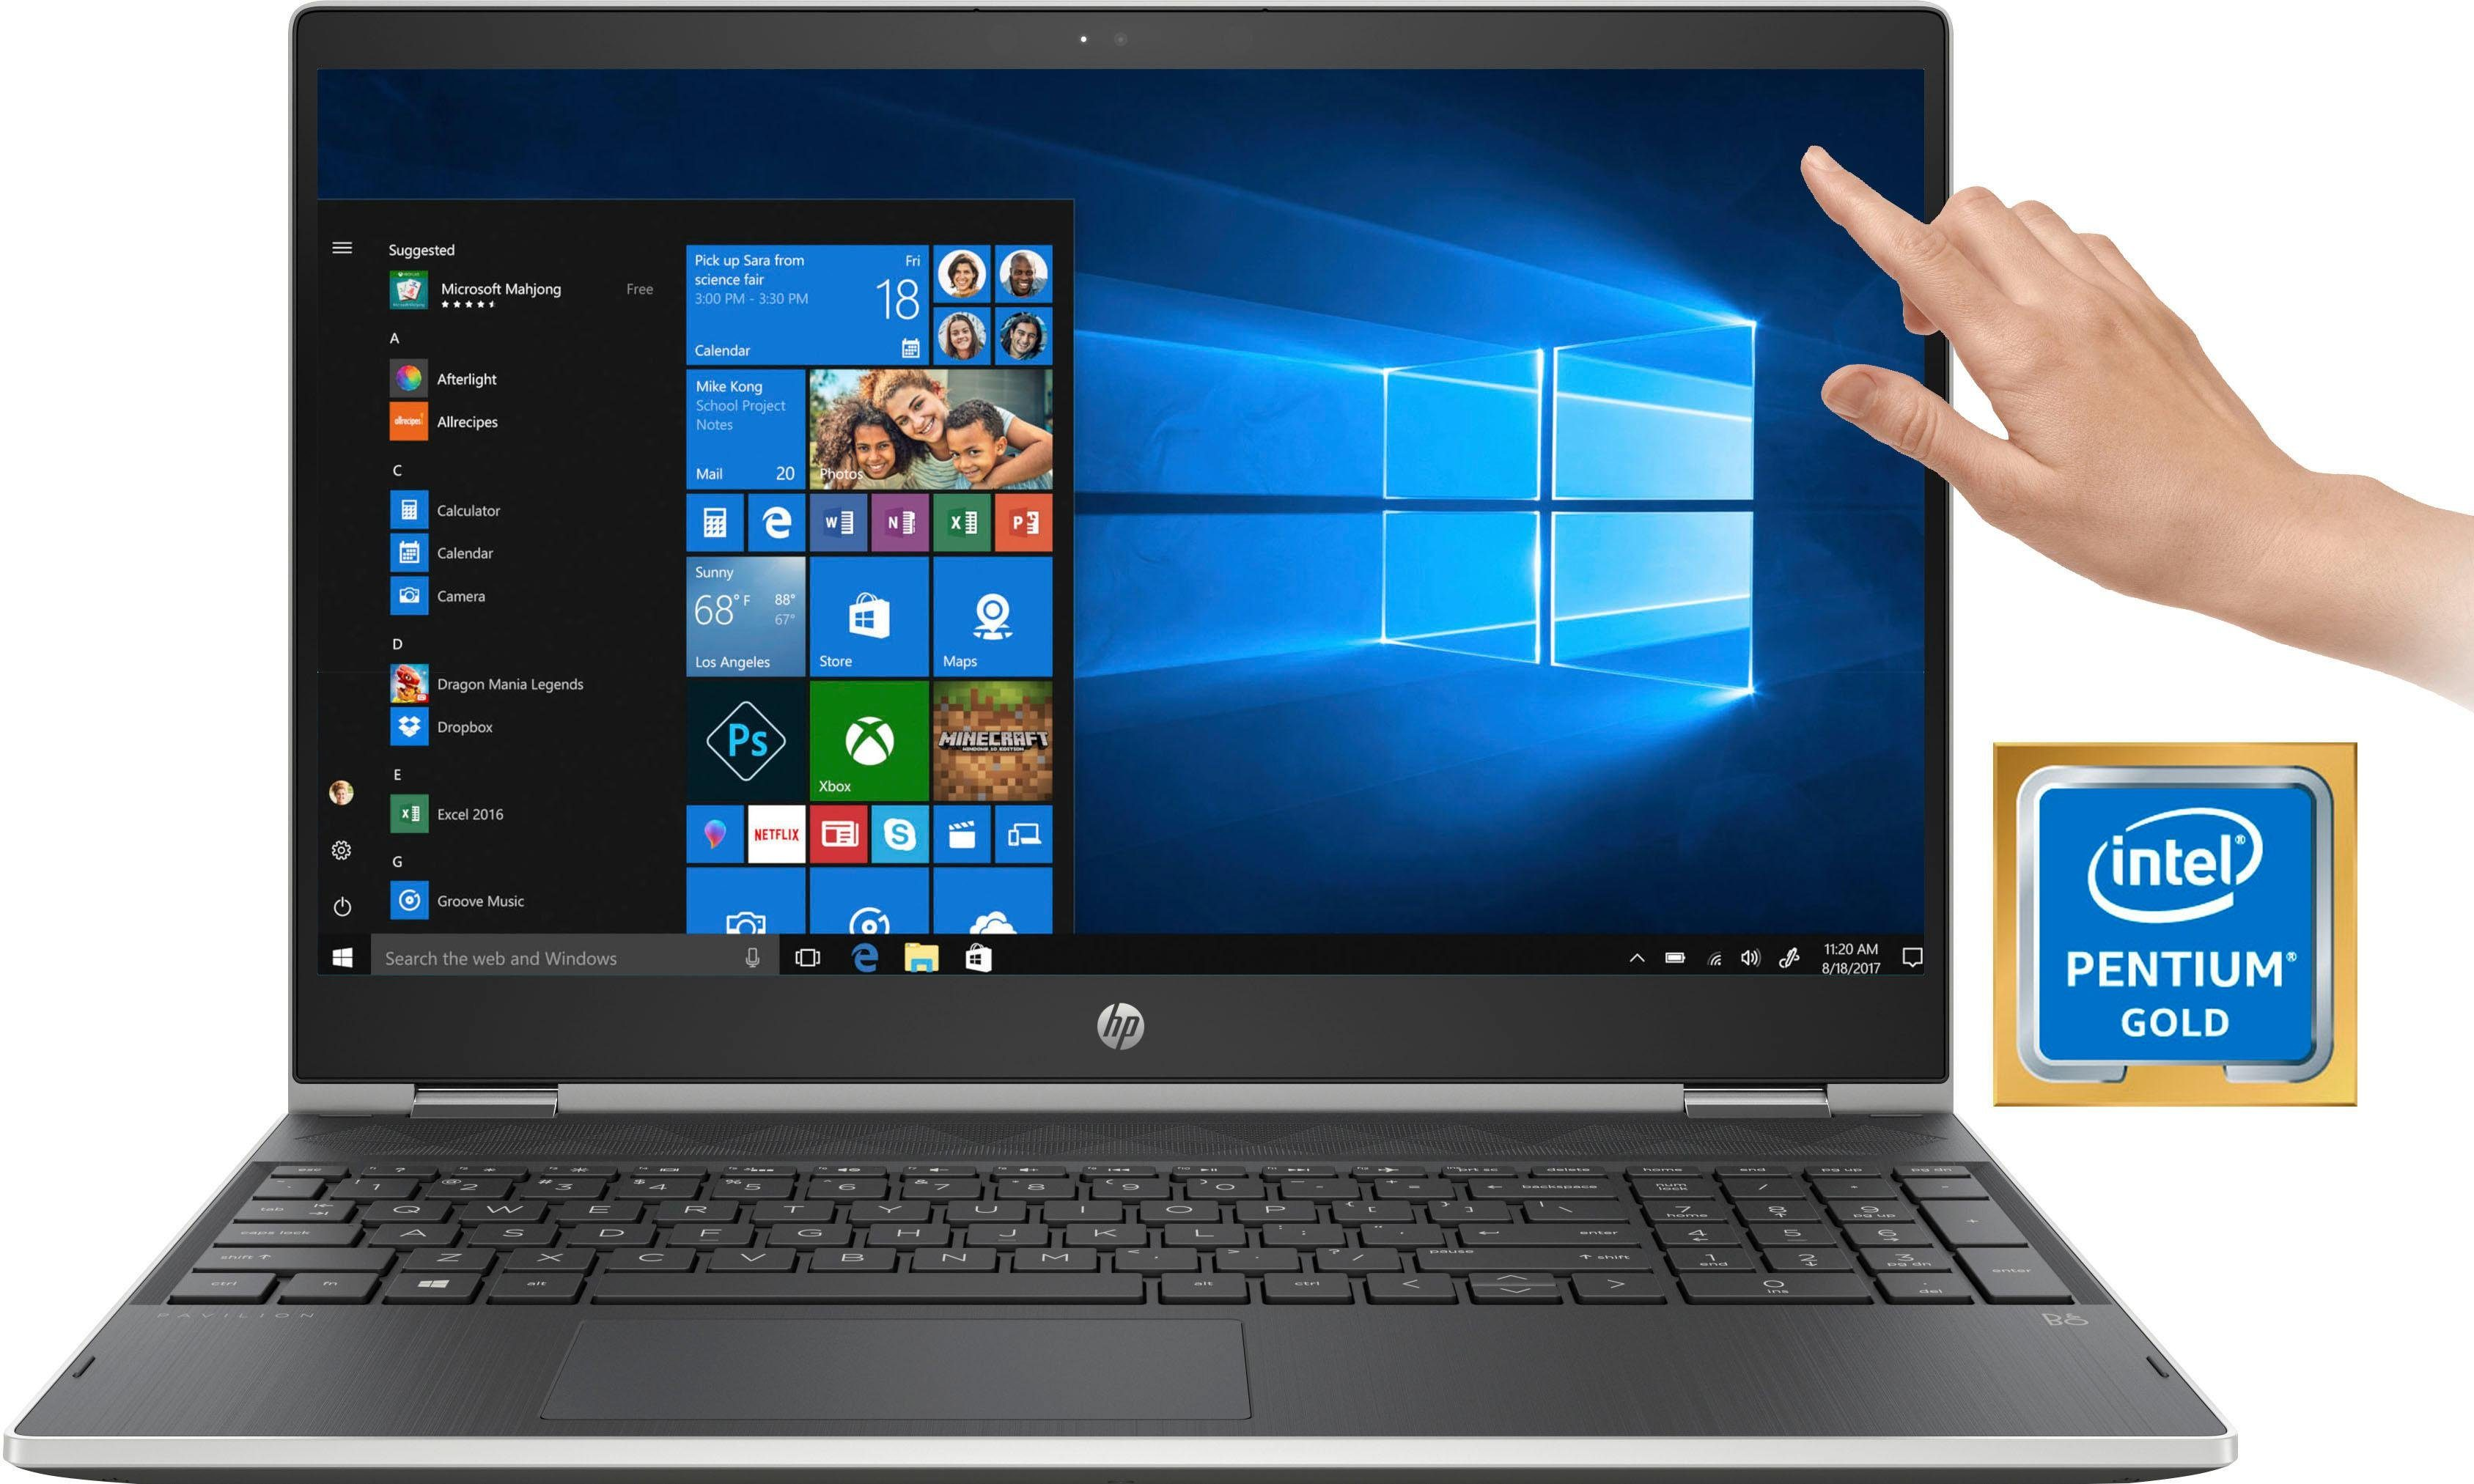 HP Pavilion x360 15-cr0211ng Notebook (39,6 cm/15,6 Zoll, Intel Pentium Gold, HD, 1000 GB HDD, inkl. Office 365 Personal (ESD)